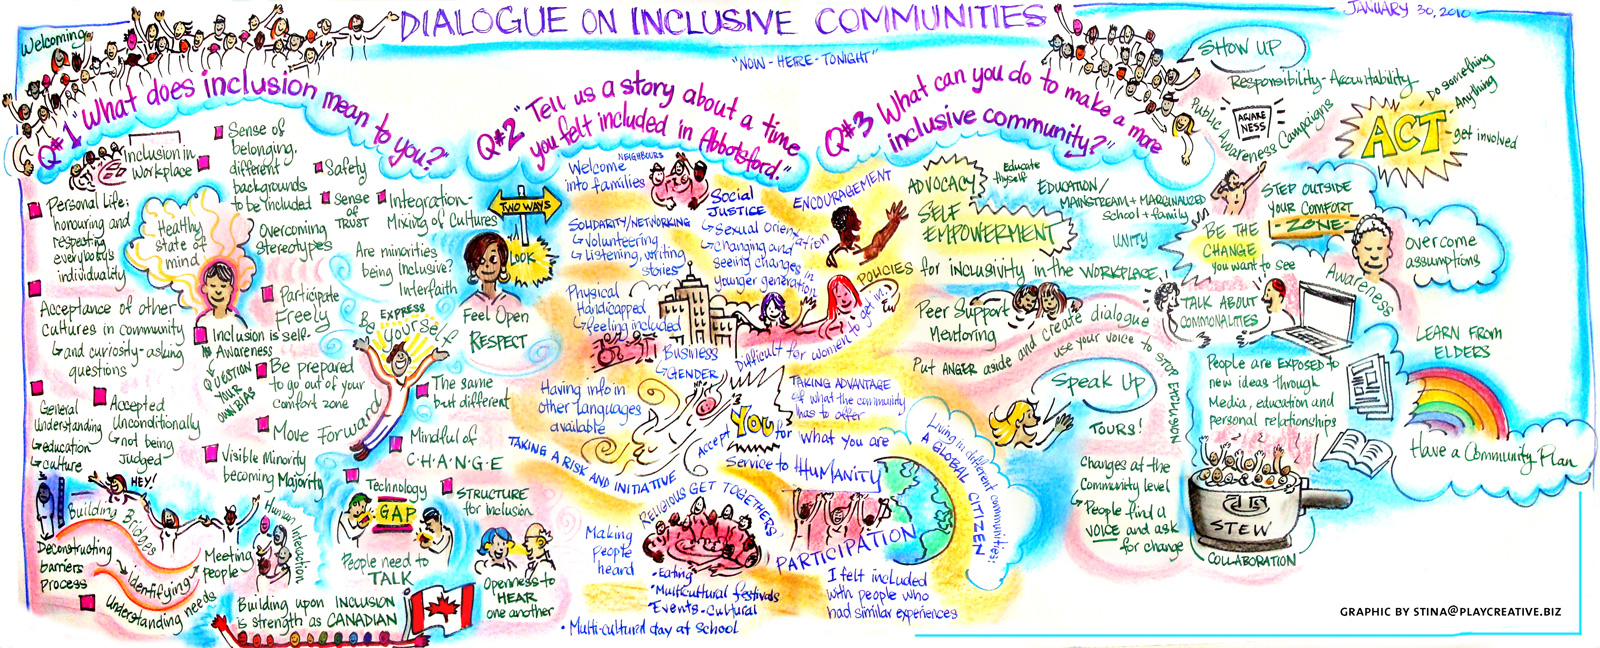 belonging to a community or a Community: the structure of belonging-2nd edition by peter block modern society is characterized by isolation and a weakened social fabric the various sectors of our communities—businesses, schools, social service organizations, churches, government—work in parallel, not in concert.